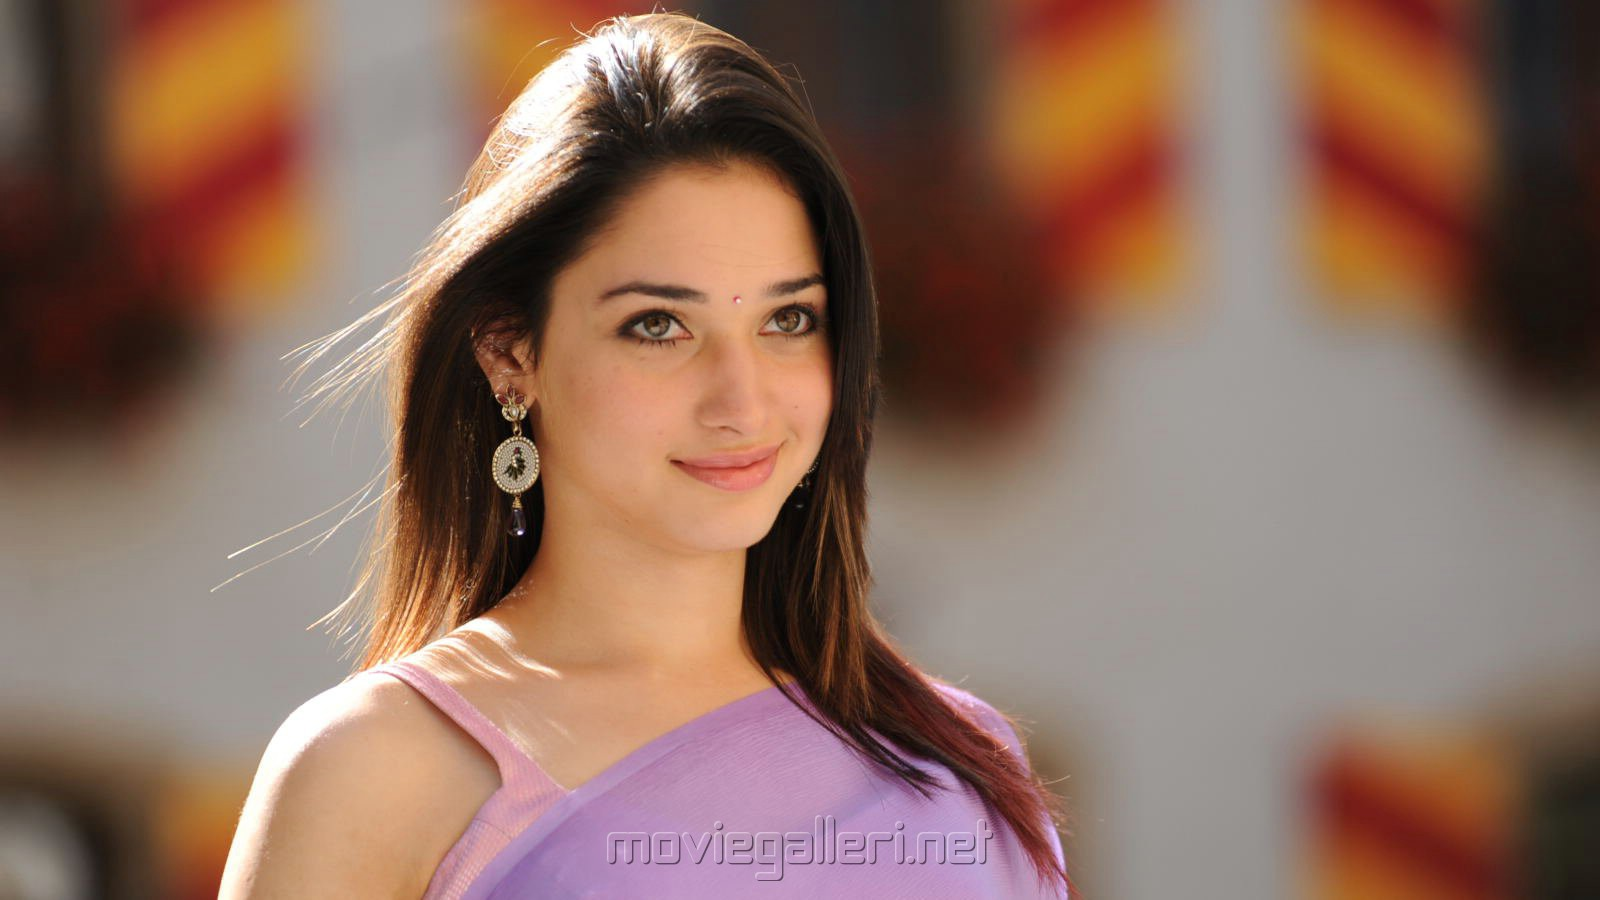 Tamanna Bhatia Wallpapers HD Wallpaper  1600x900